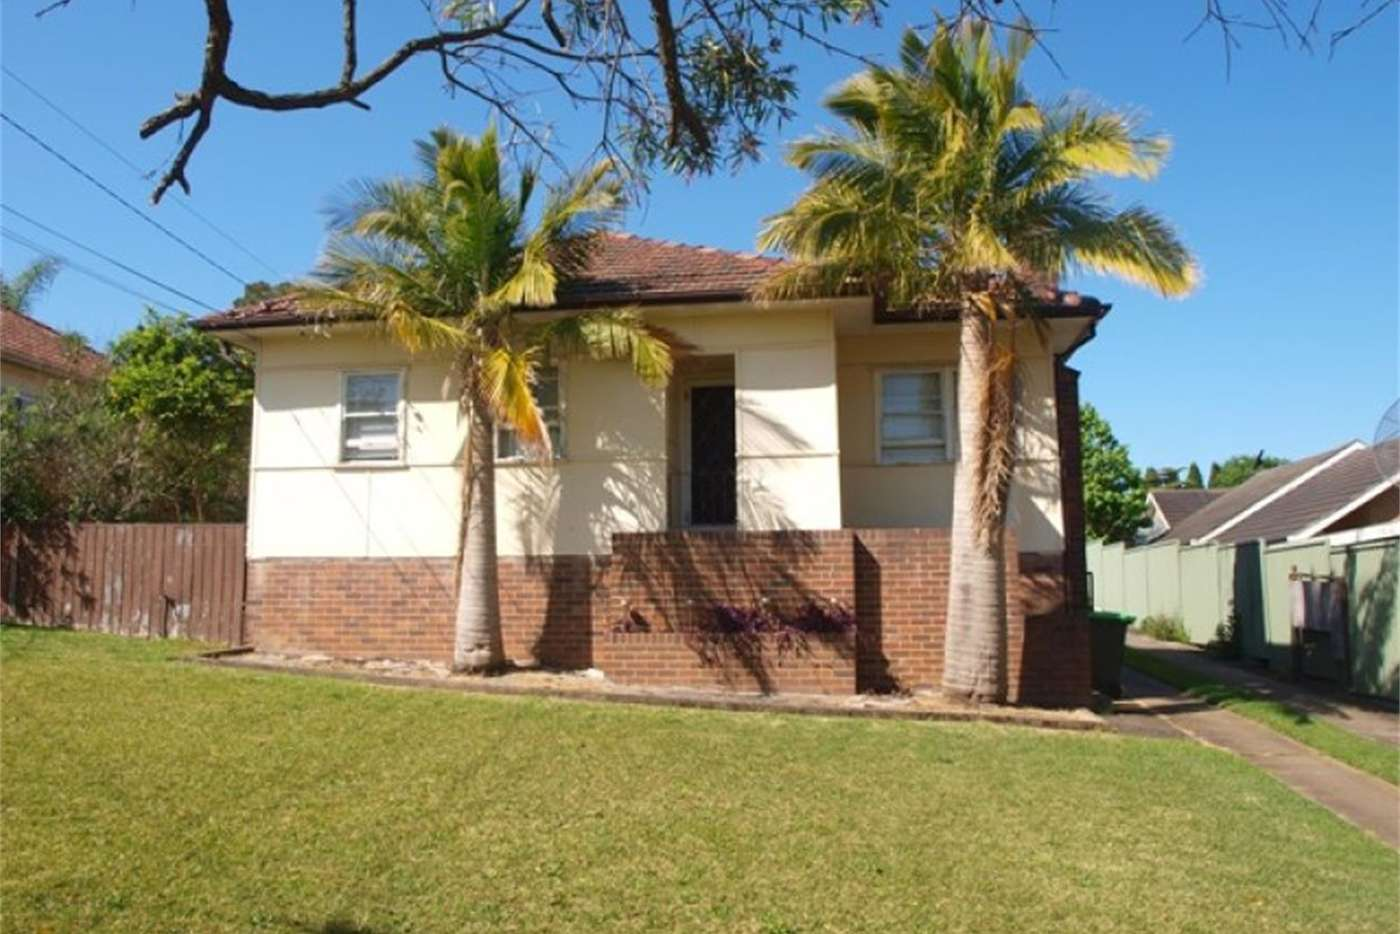 Main view of Homely house listing, 38 Nicoll Street, Roselands NSW 2196